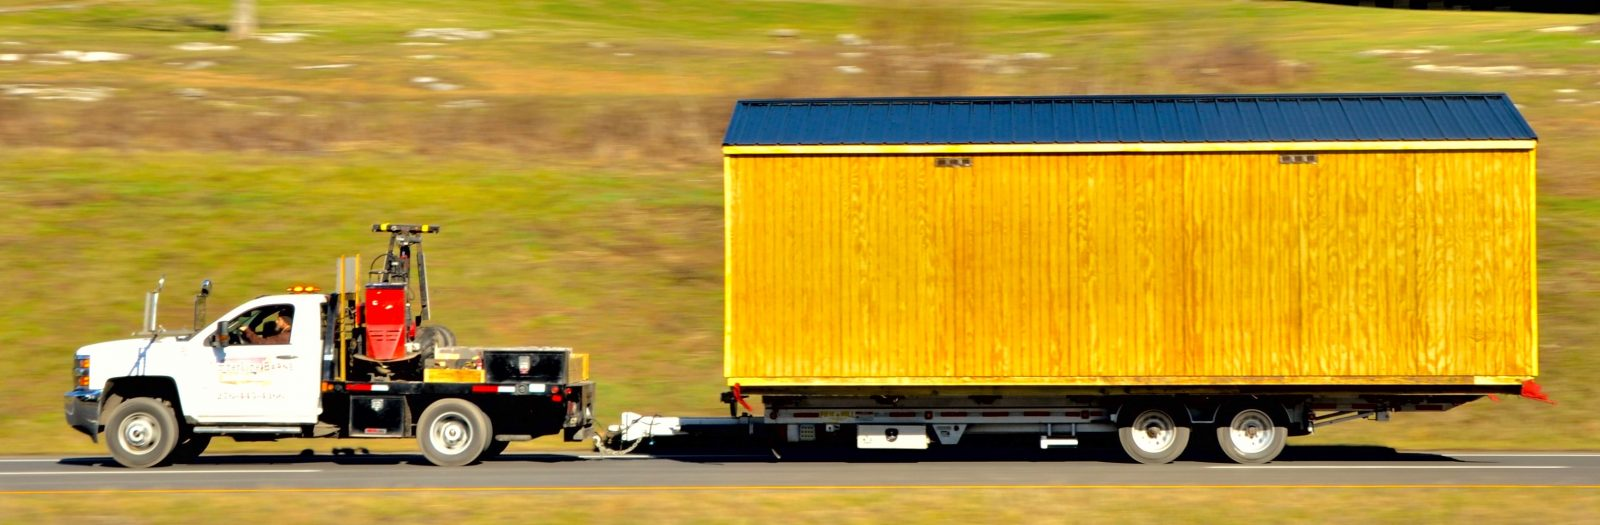 shed-delivery-on-the-road